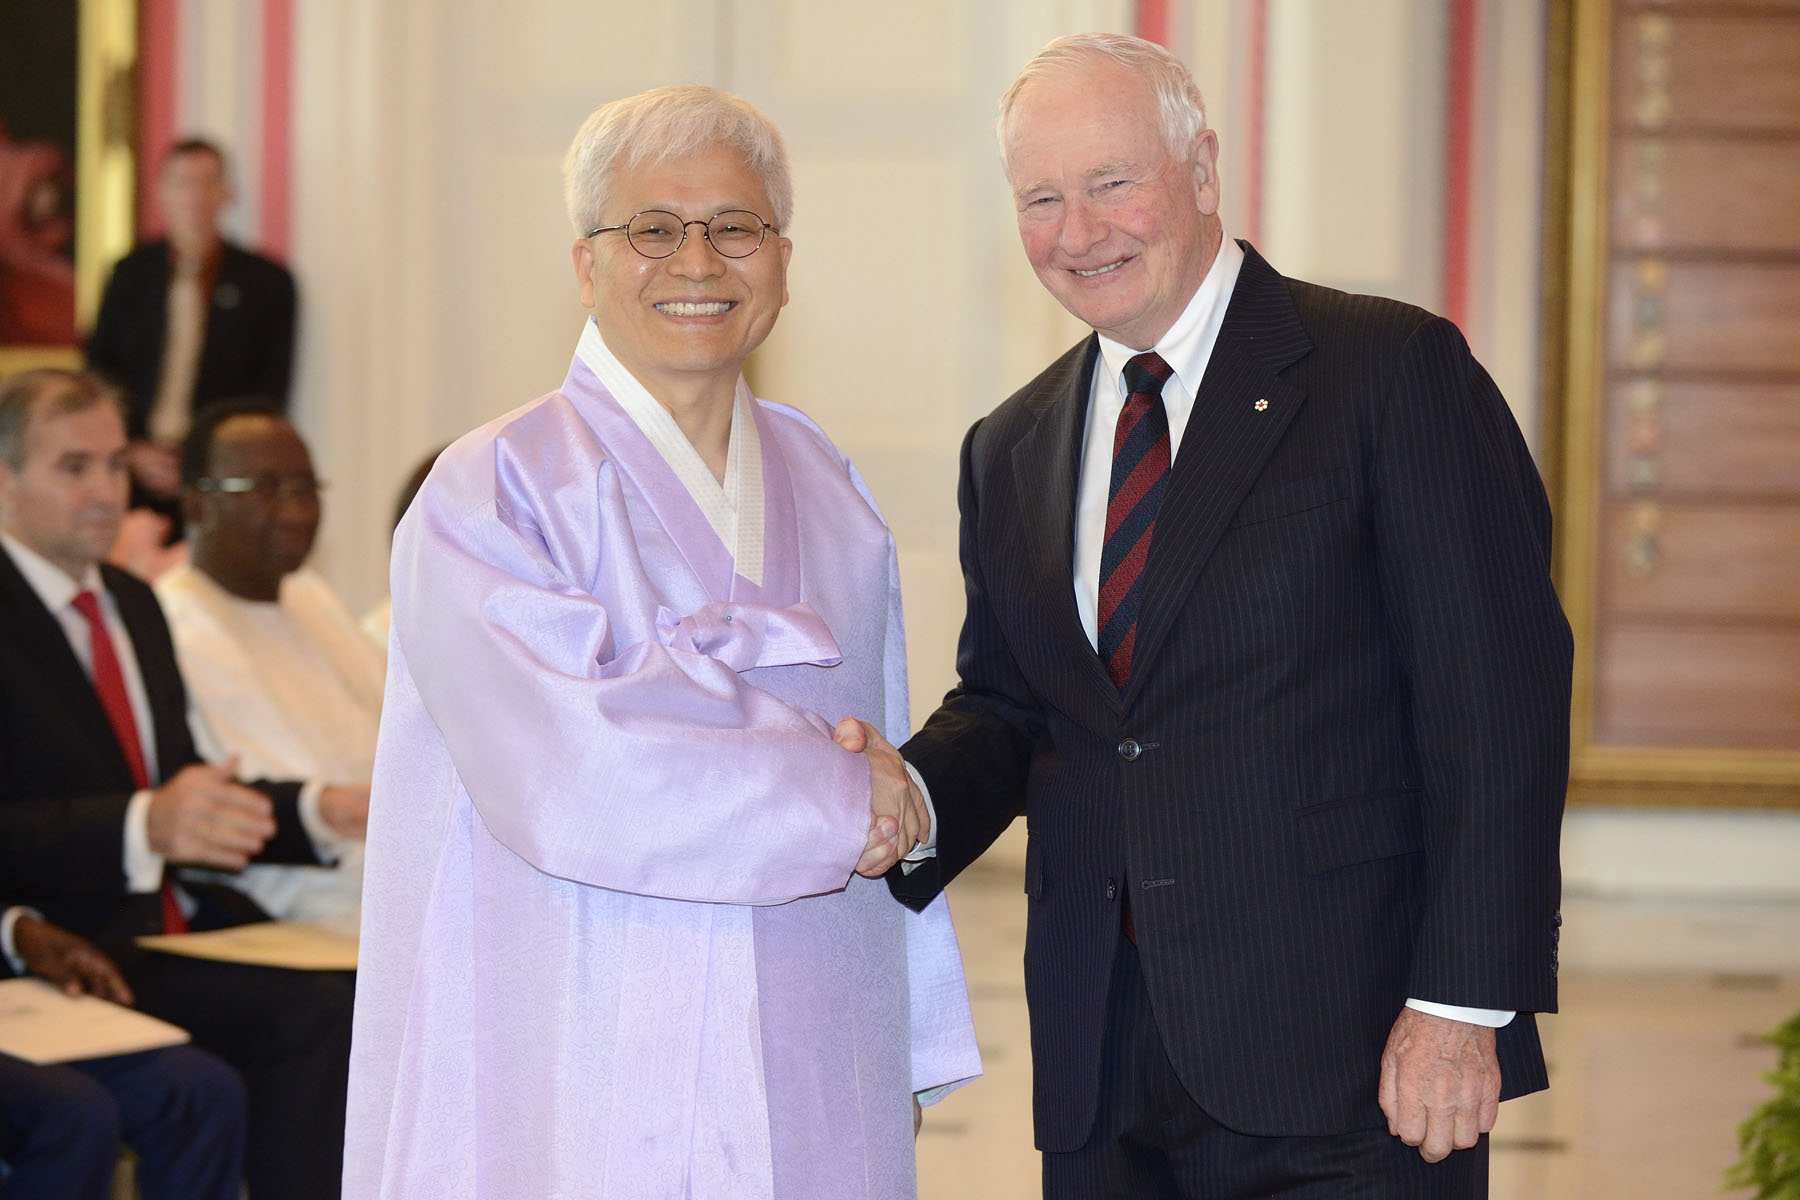 The Governor General received the letters of credence of six new heads of mission during a ceremony at Rideau Hall. His Excellency Jo Dae-shik, Ambassador of the Republic of Korea, was first to present his letters.